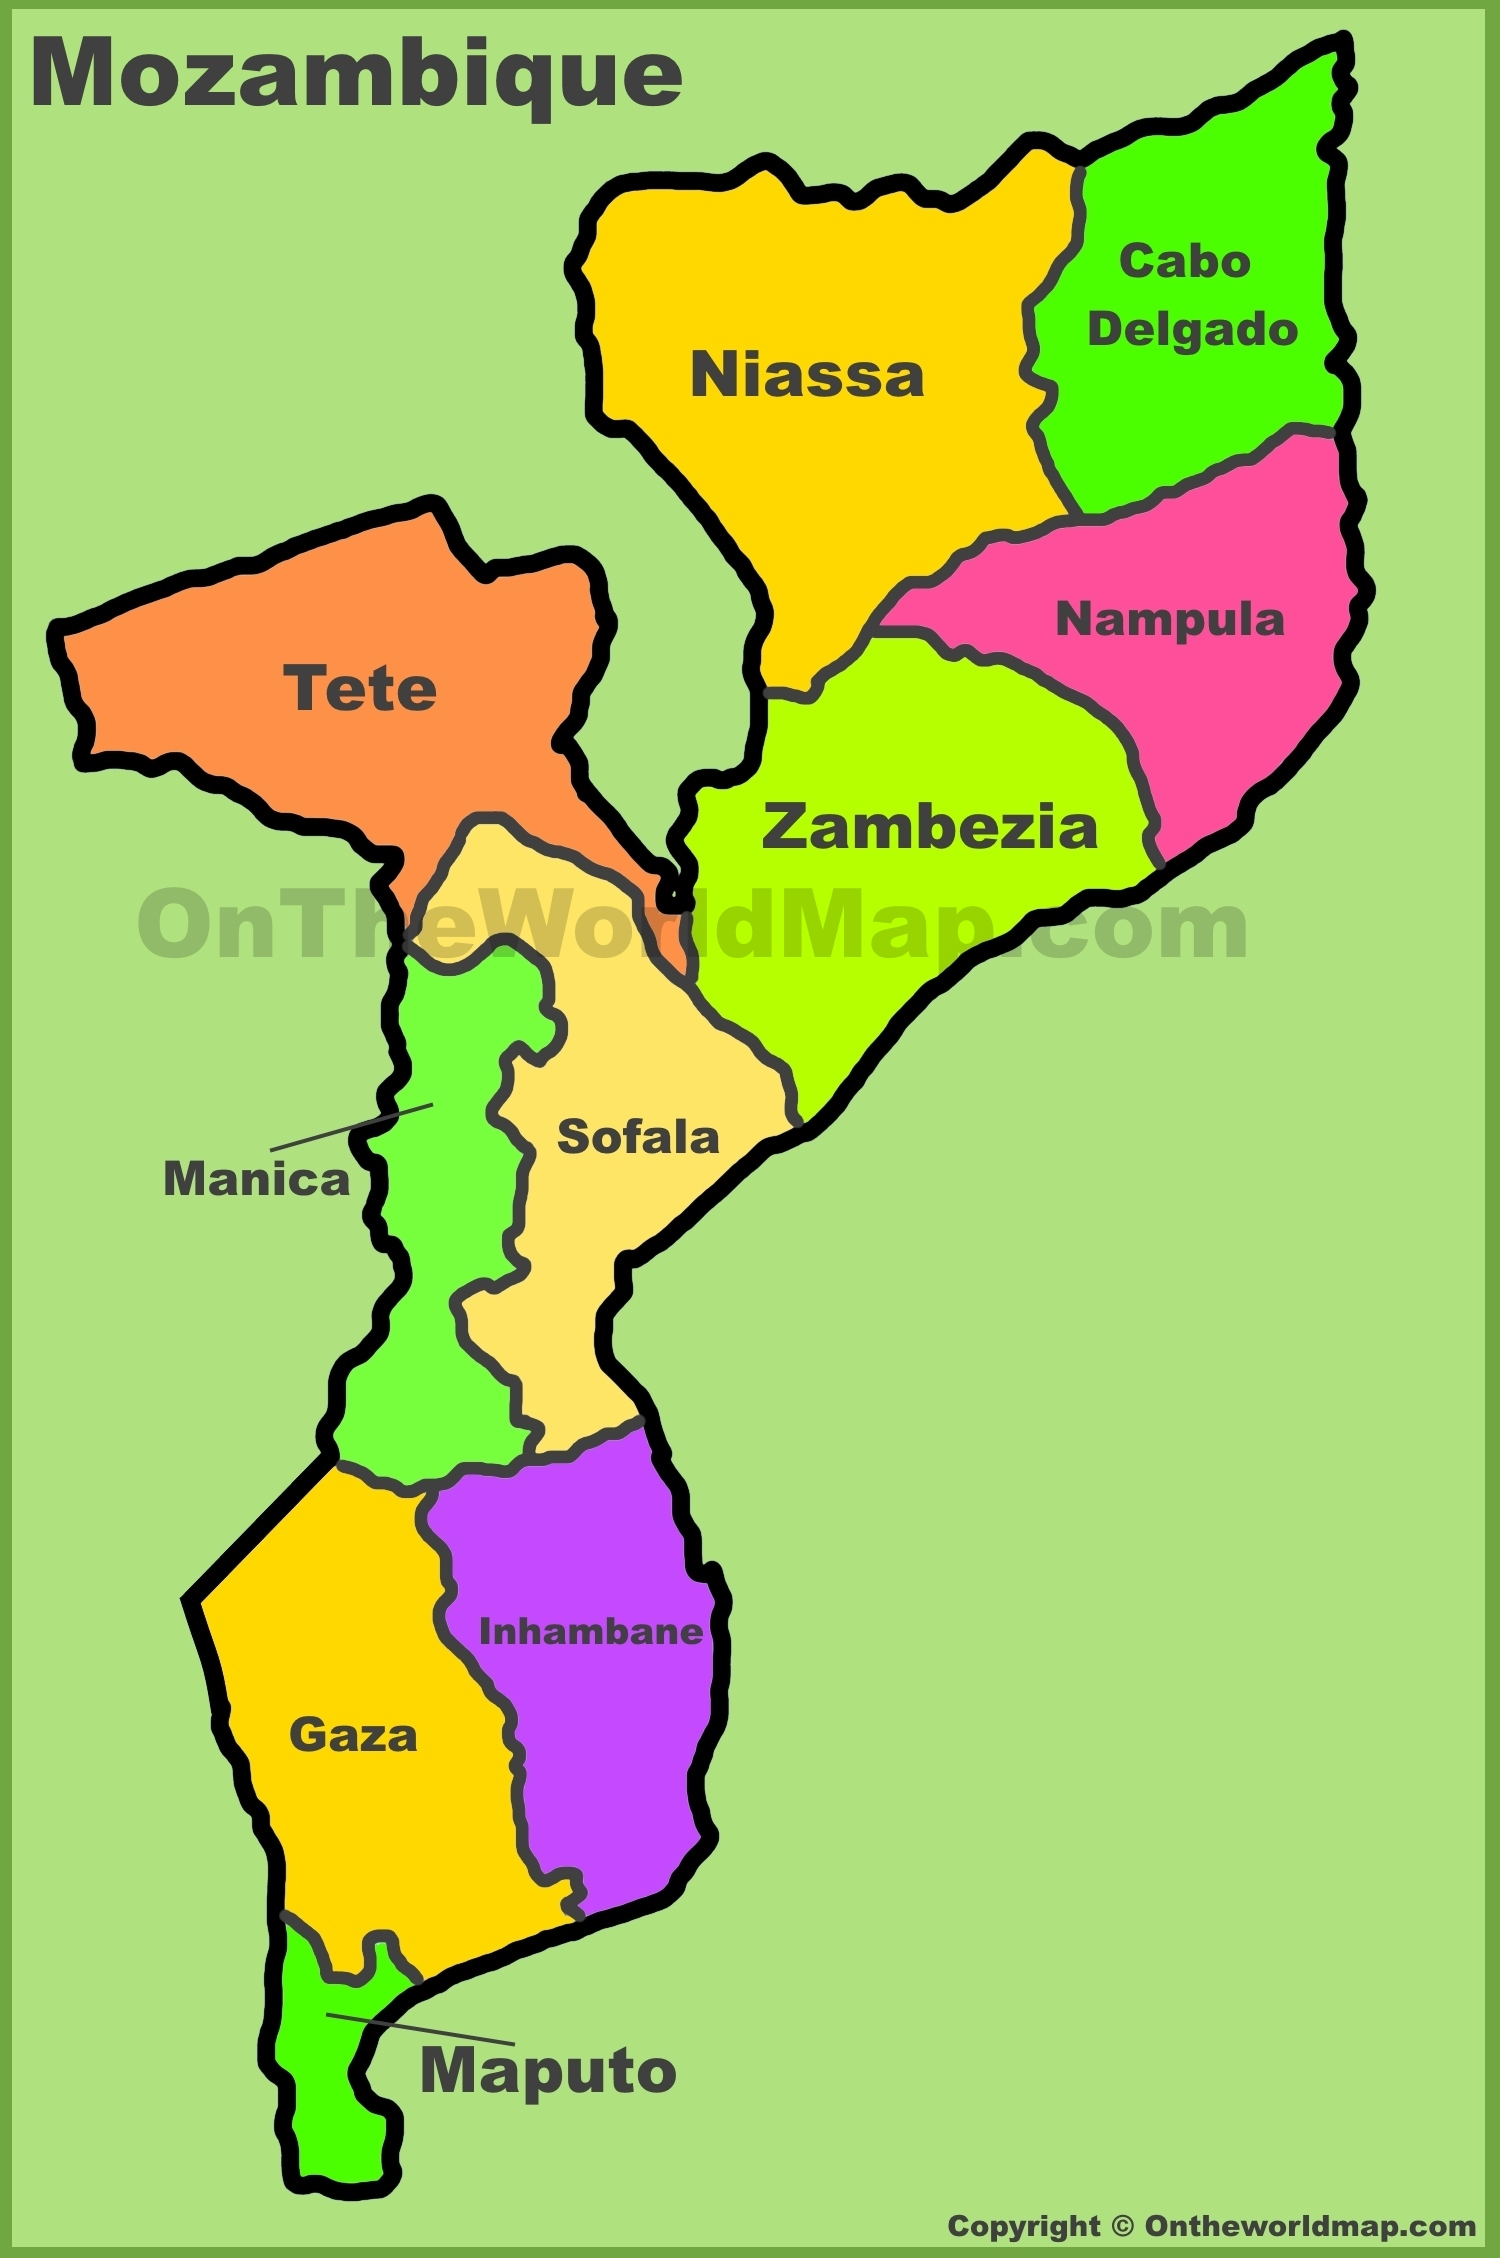 Administrative divisions map of Mozambique